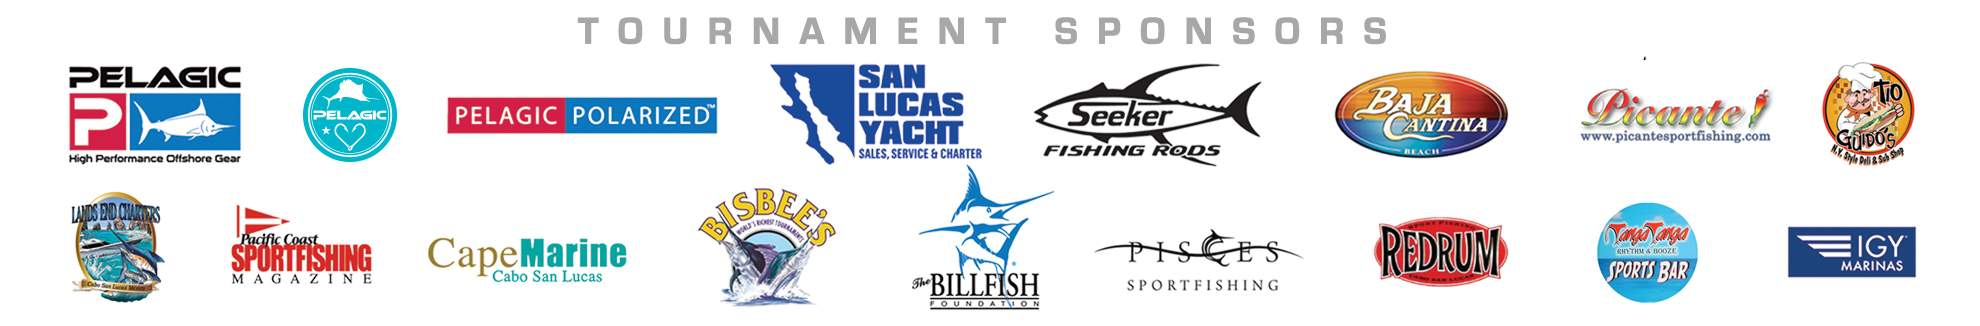 Pelagic Triple Crown Sponsors